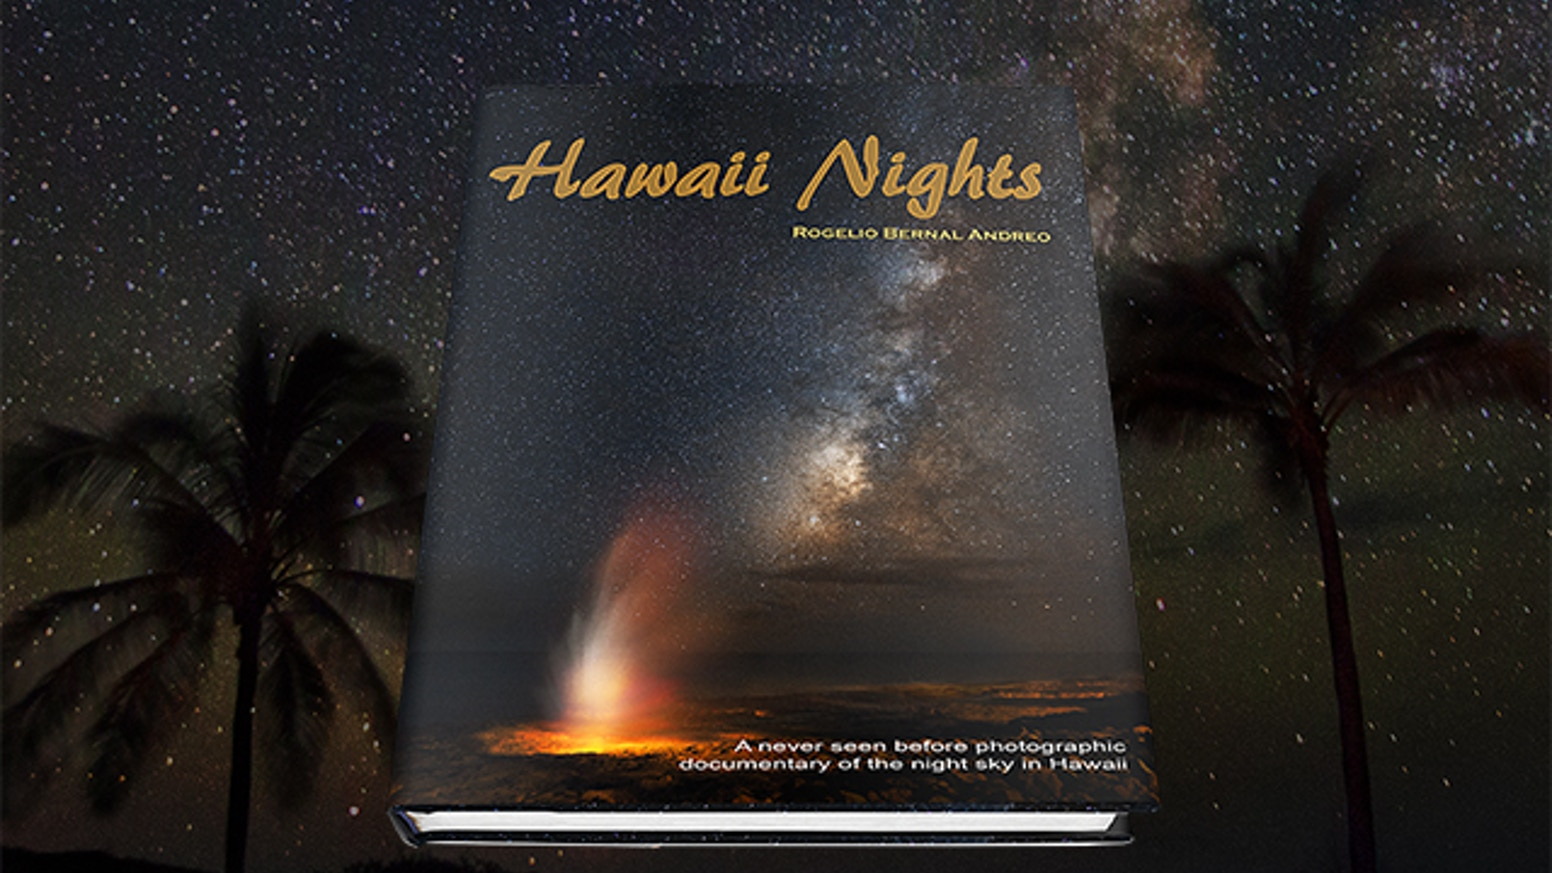 Producing a never seen before professional quality photographic documentary of the night sky in all inhabited islands of Hawaii.